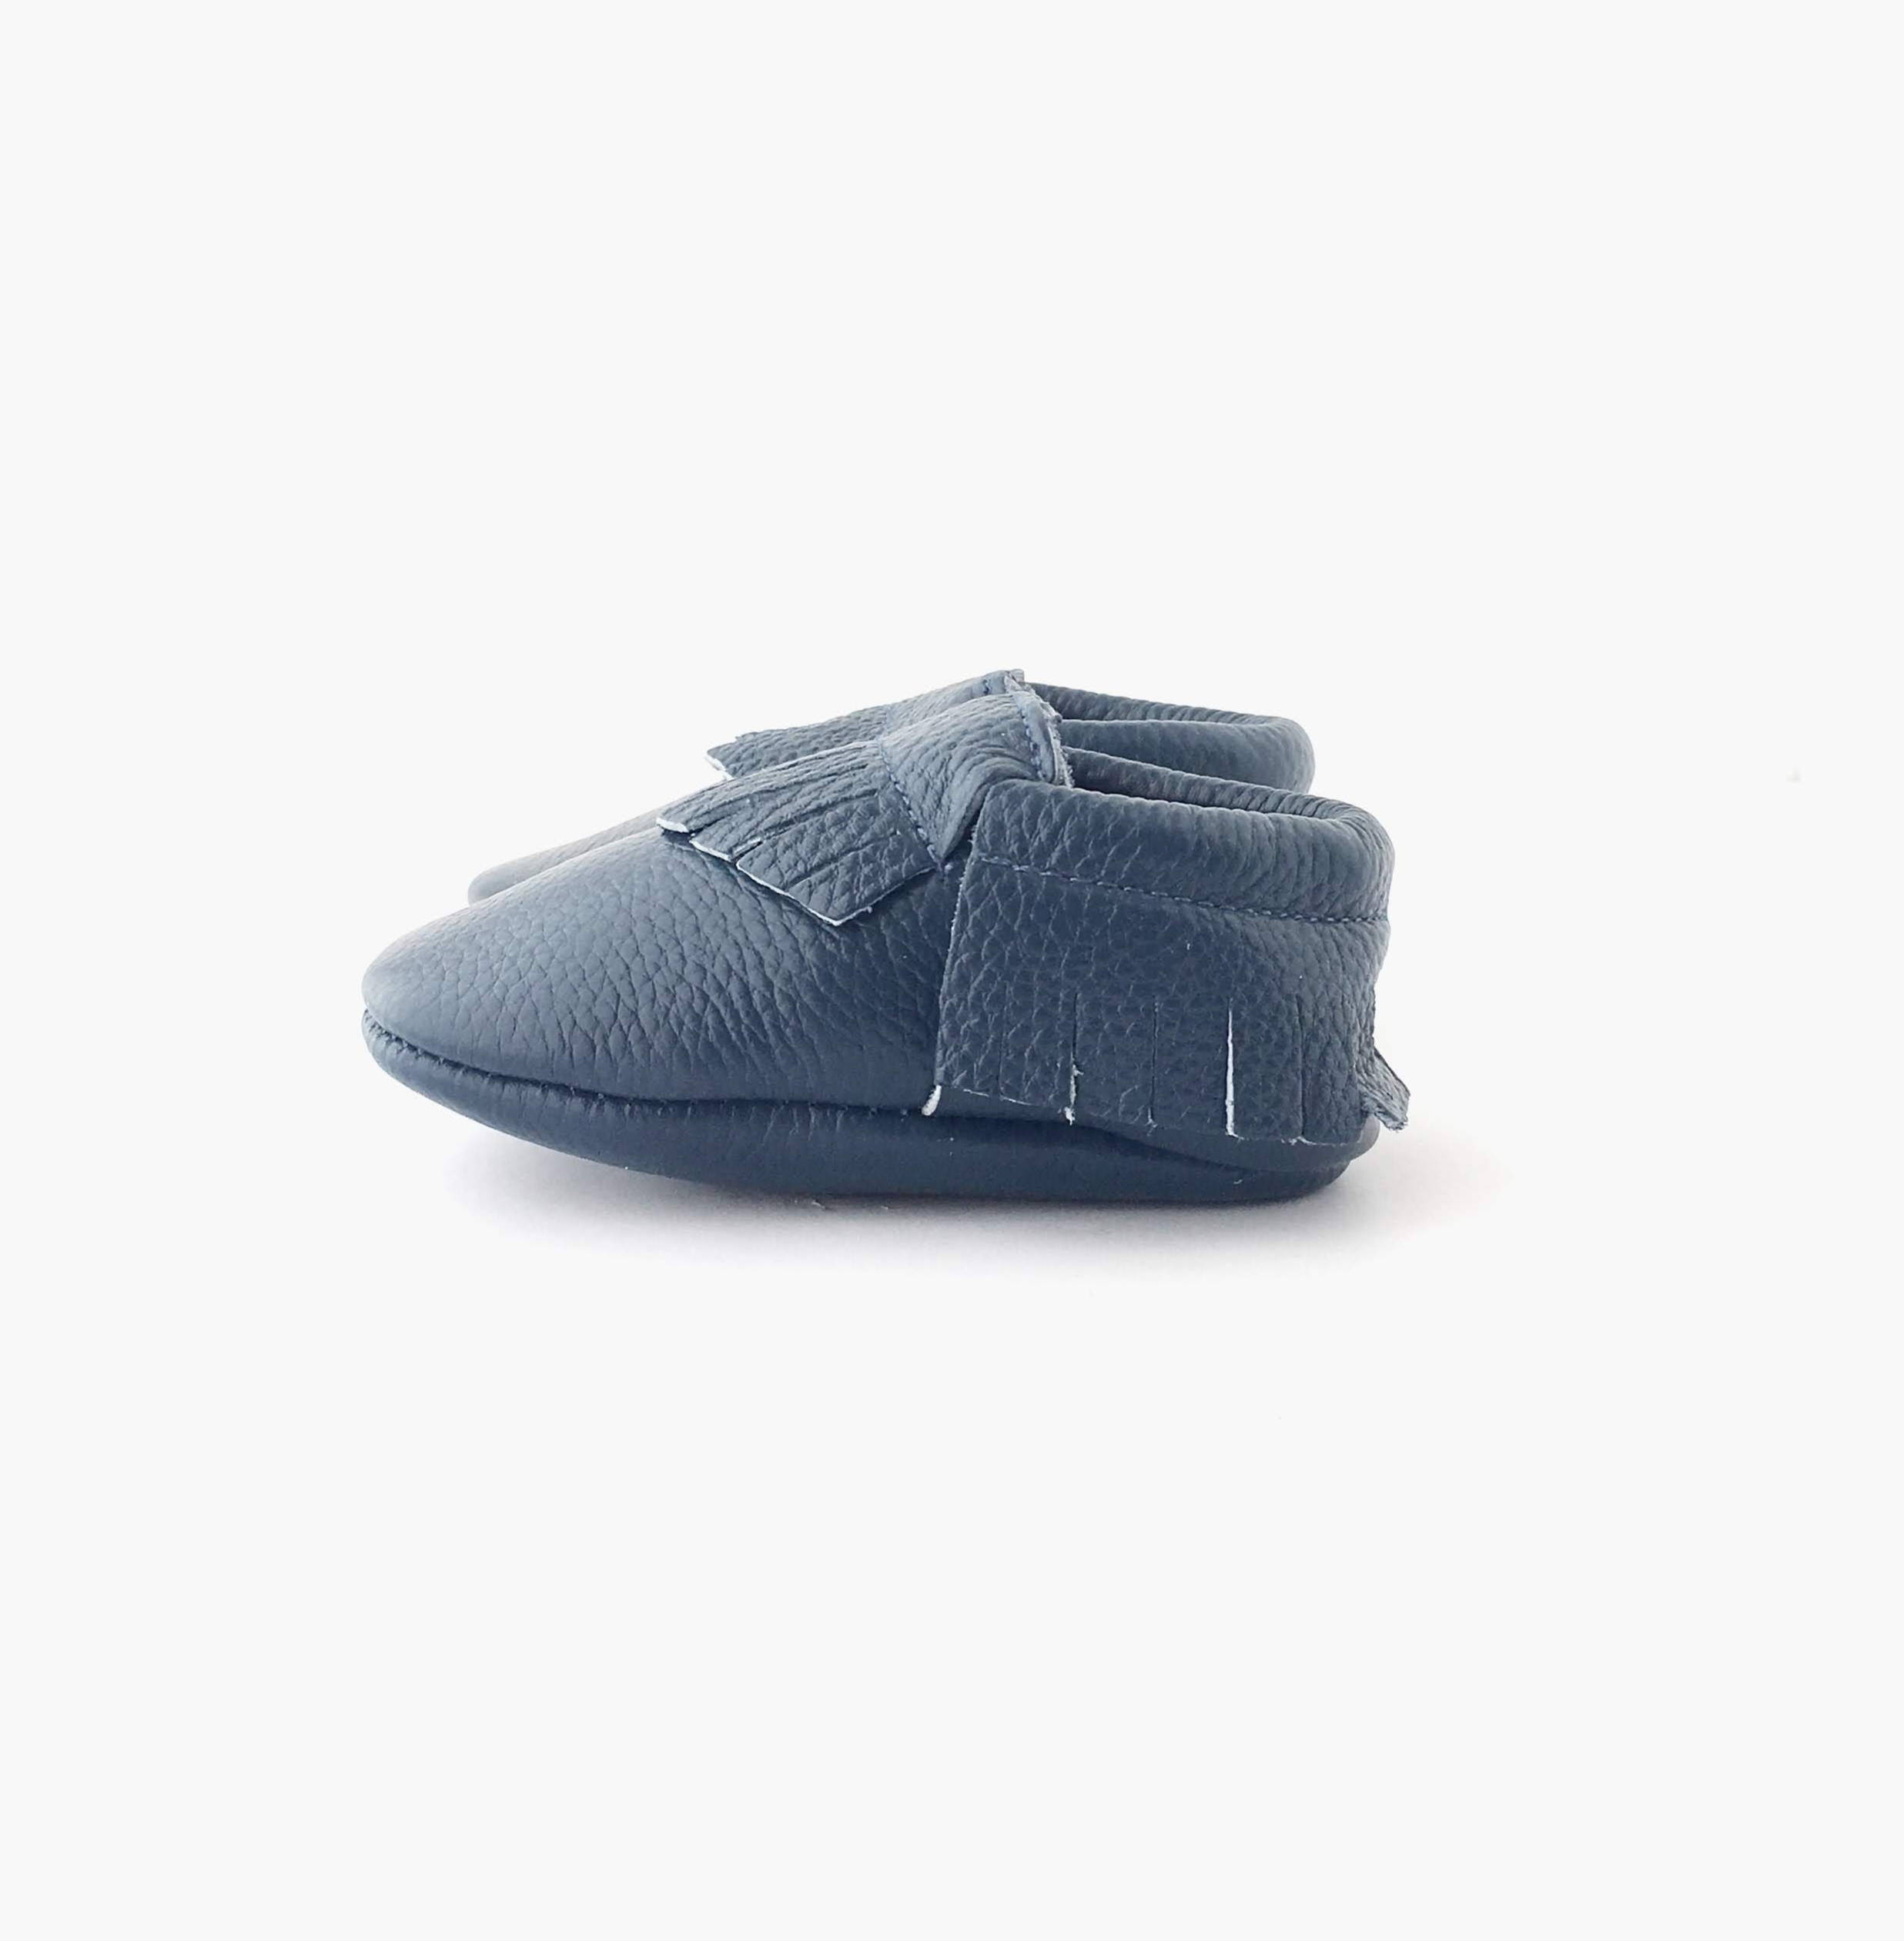 Steel Blue colour soft sole shoes with fringe sole view